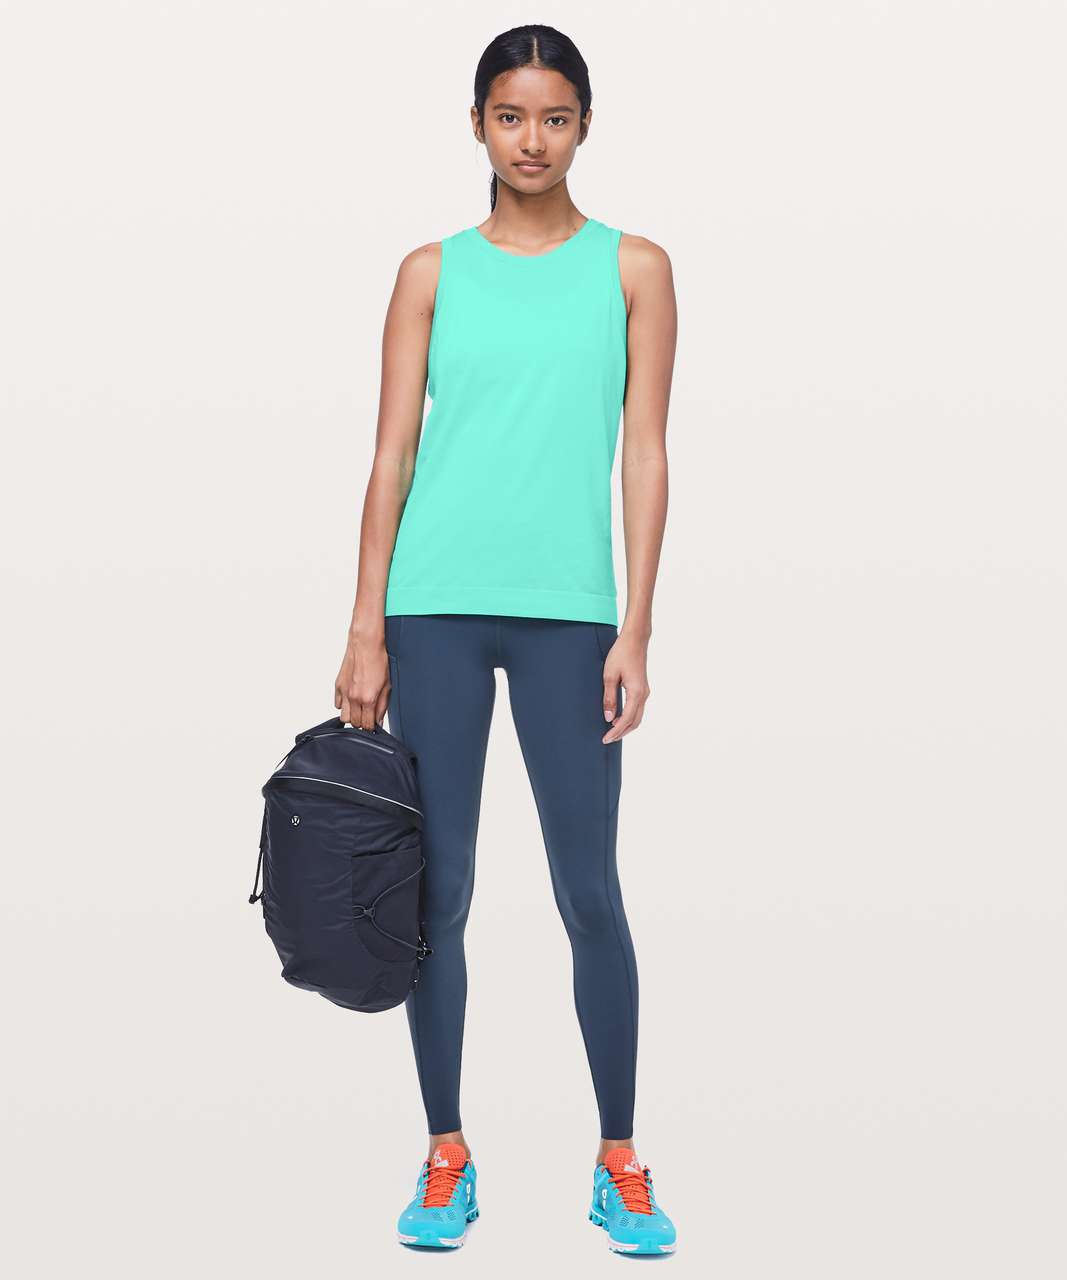 Lululemon Swiftly Breeze Tank - Bali Breeze / Bali Breeze